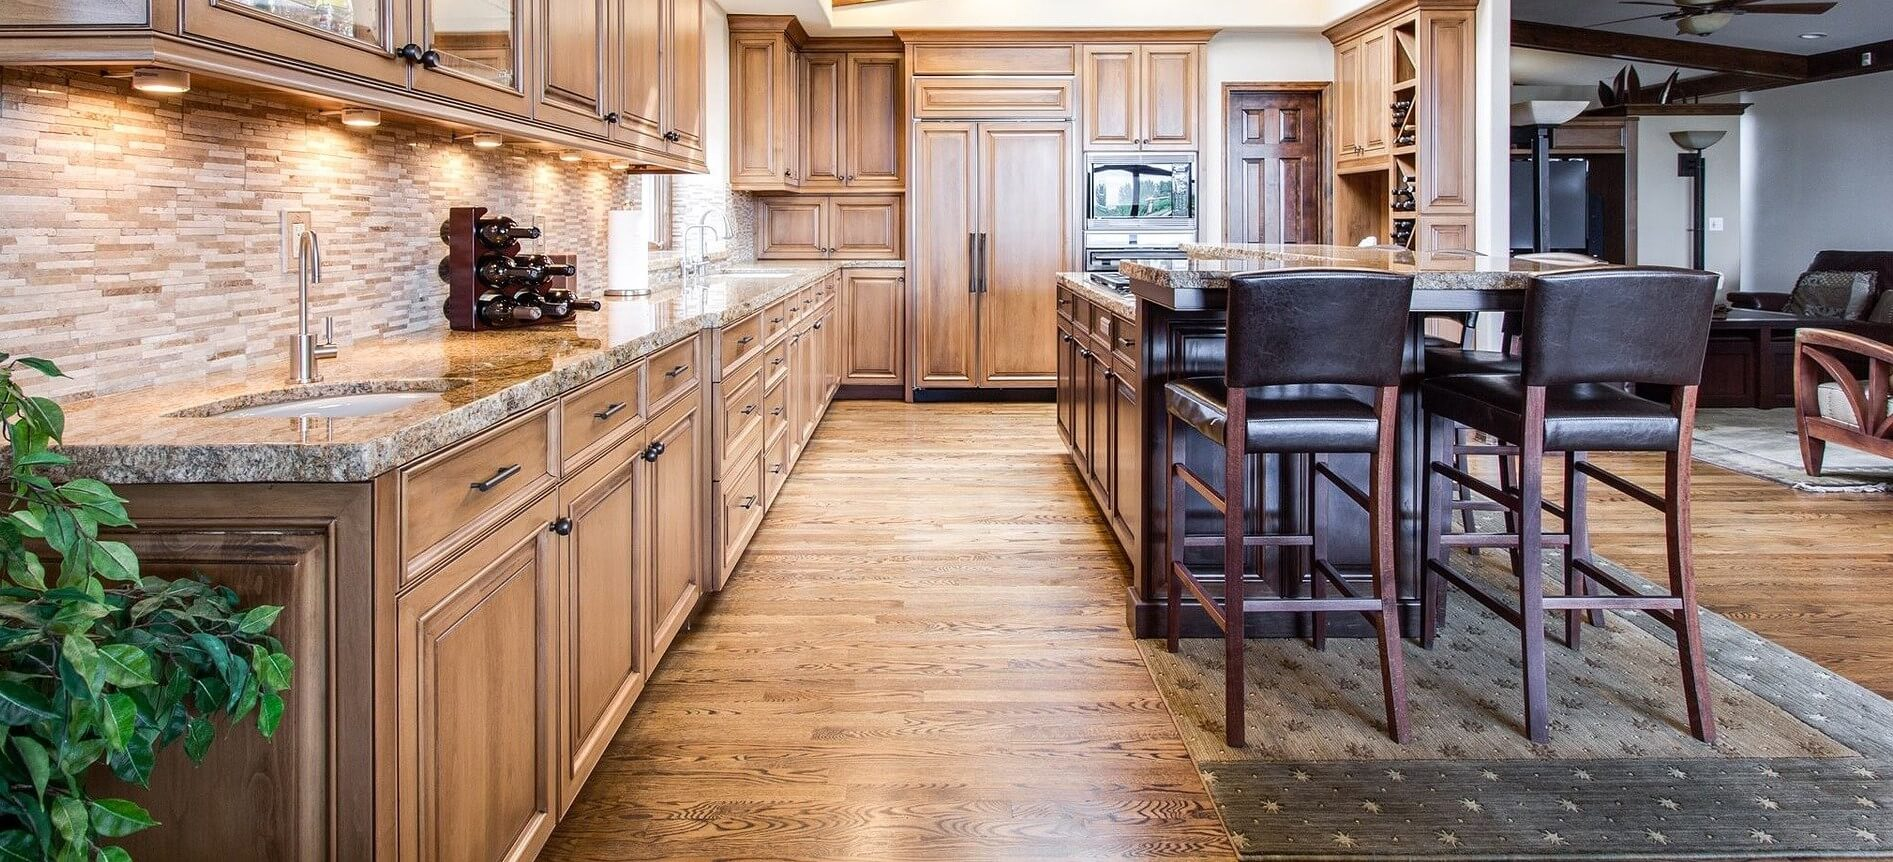 3 Best Flooring Options for Bathroom and Kitchen